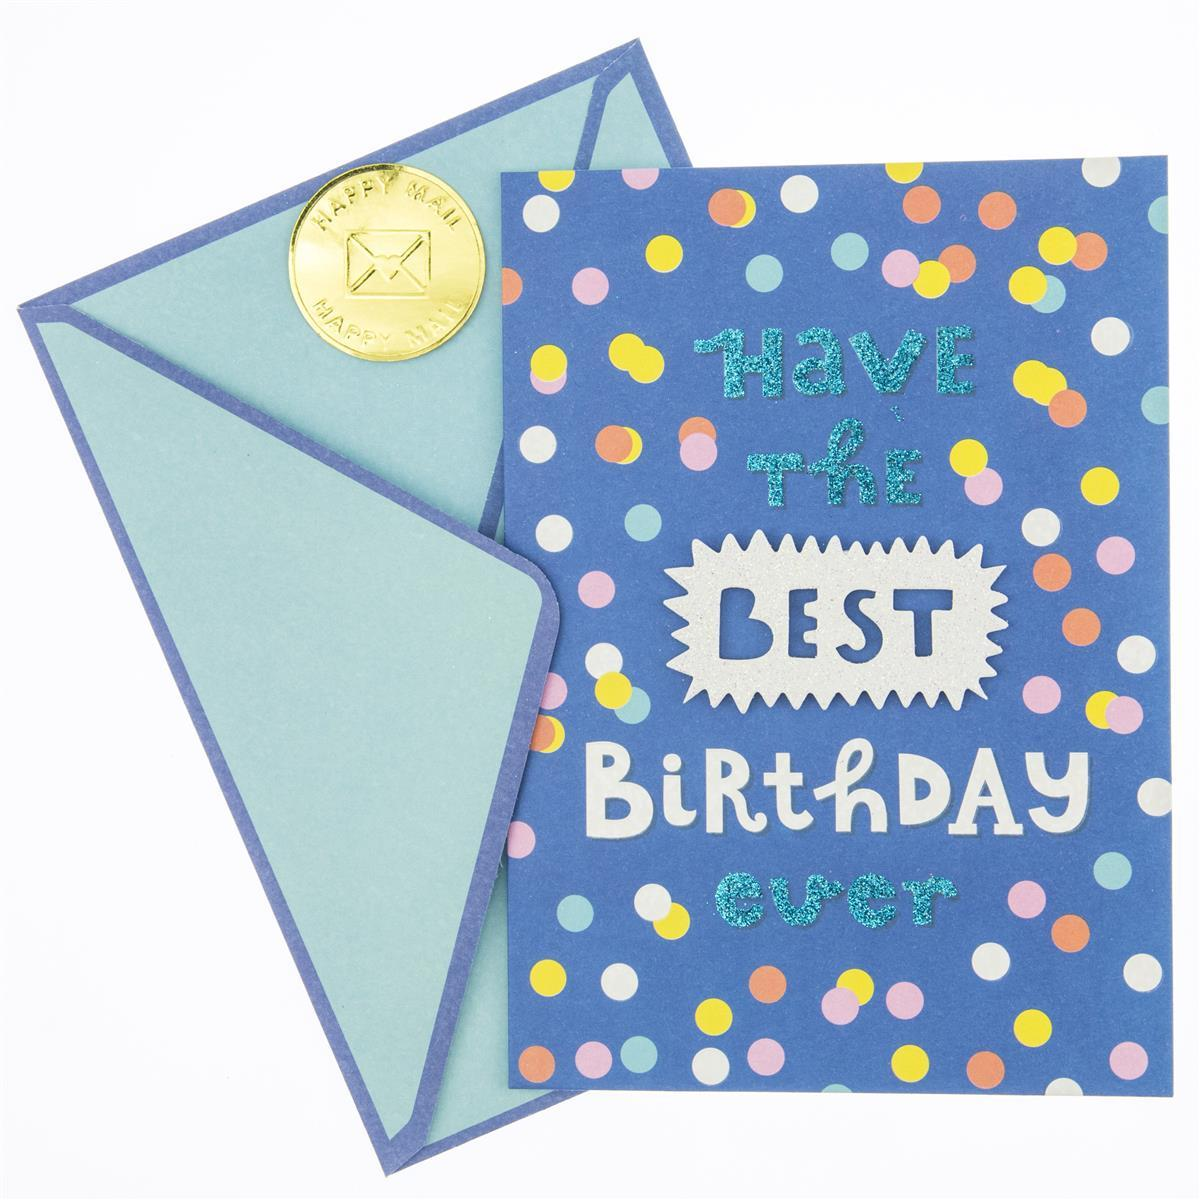 Best Ever Birthday Handmade Card